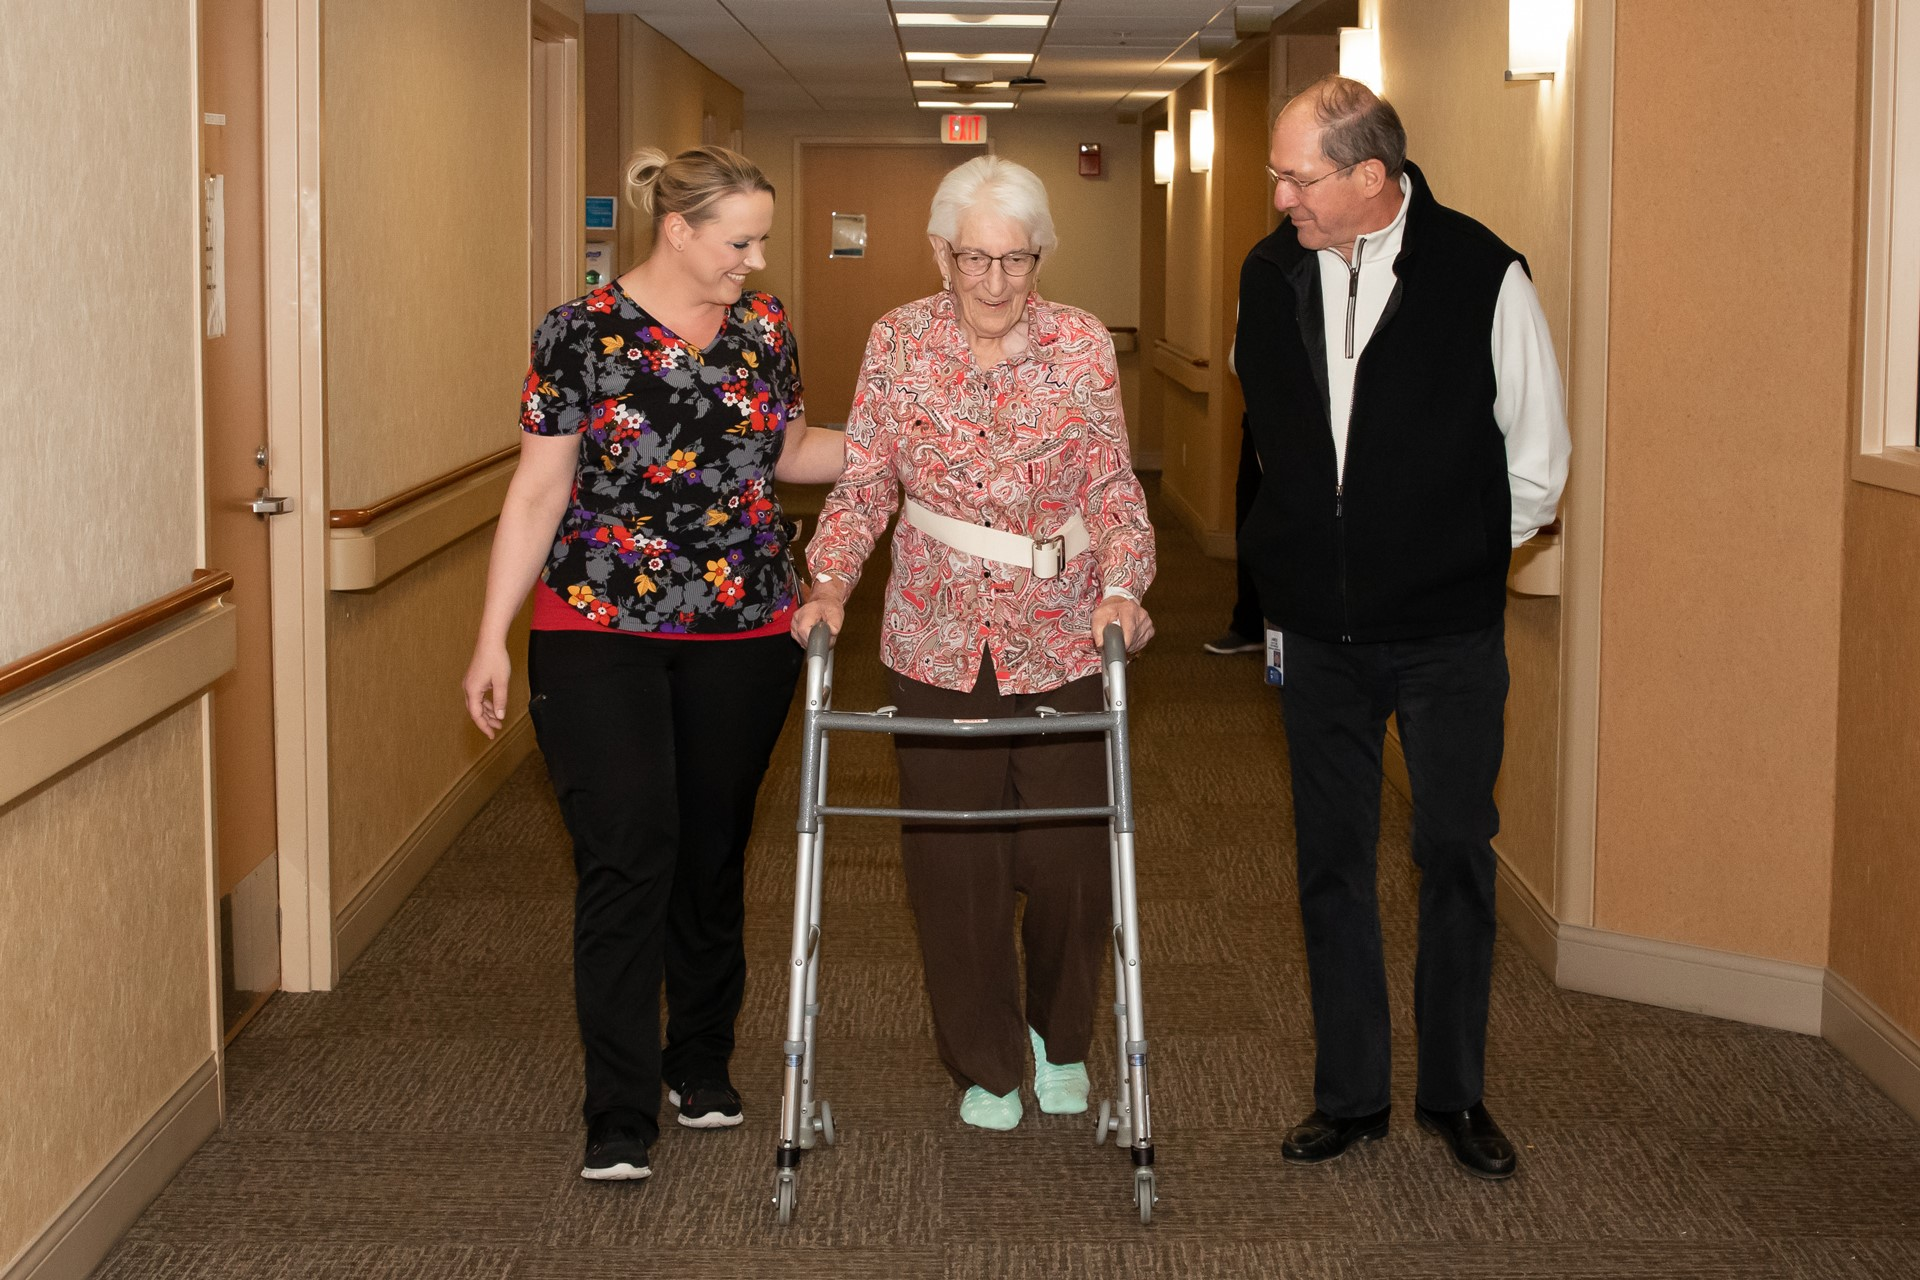 Getting a new knee at 93 years young